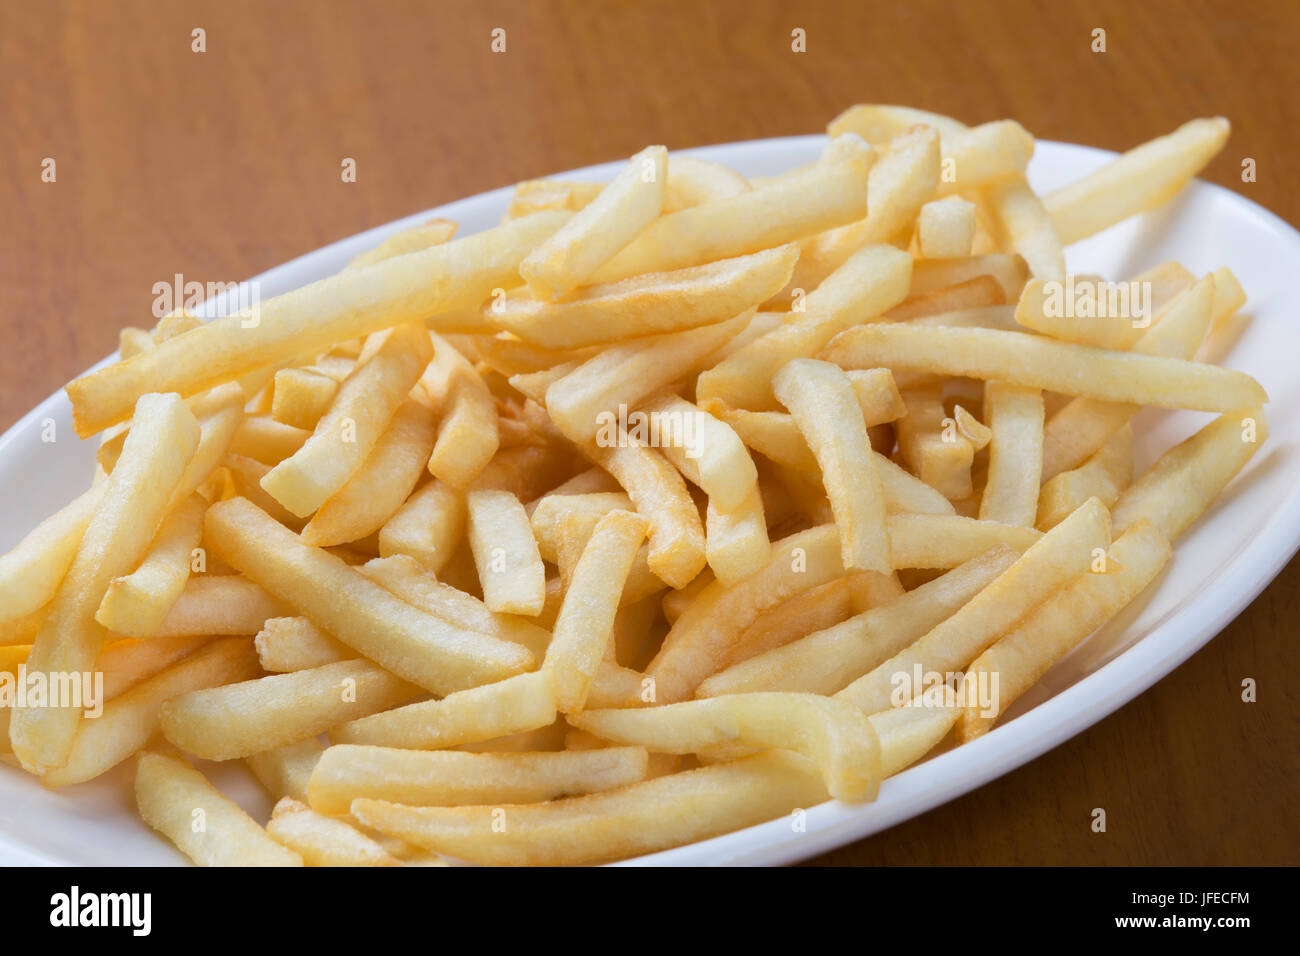 A plate full of delicious shoestring style french fries - Stock Image